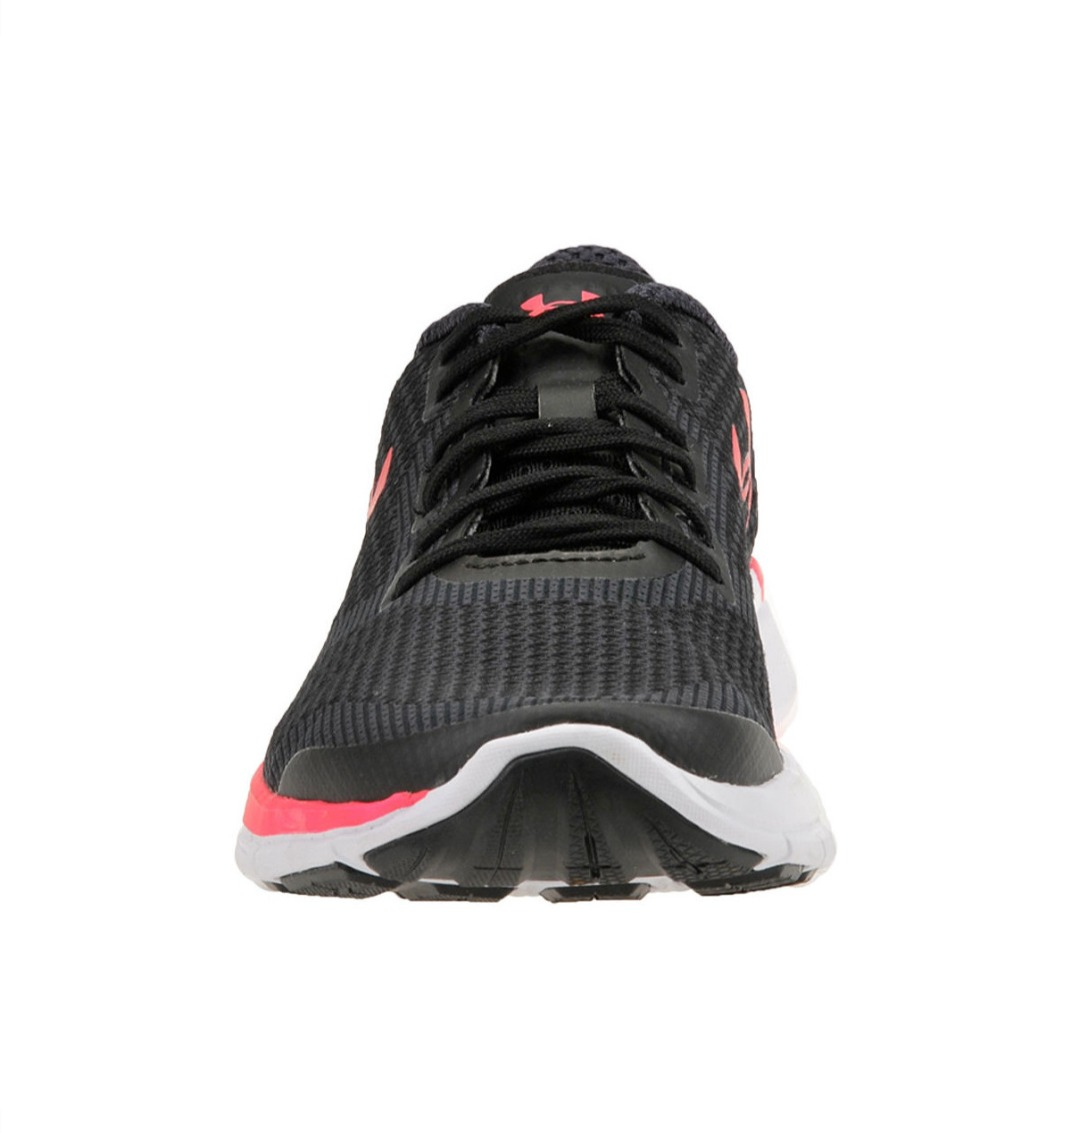 8c6770d840332 Cargando zoom... tenis under armour charged lightning para mujer